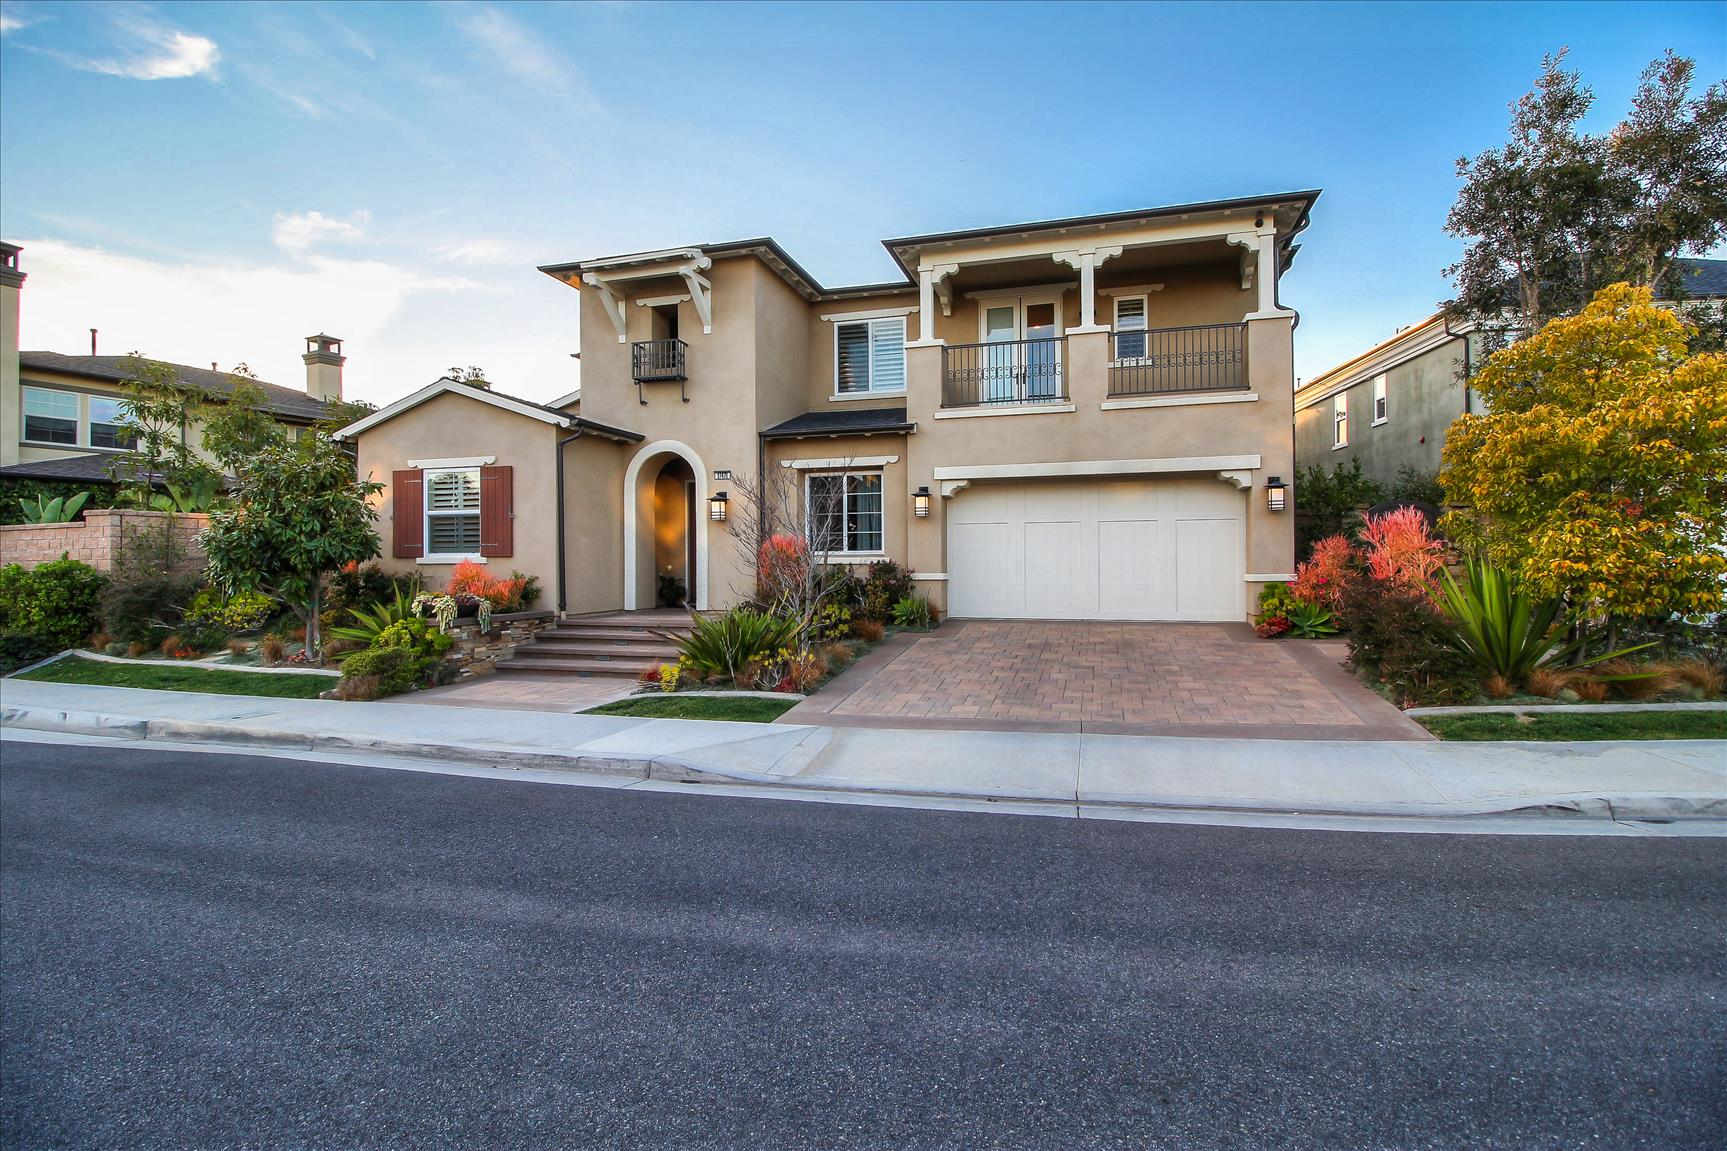 17471 Kennebunk Ln, Huntington Beach, CA  926492.jpg